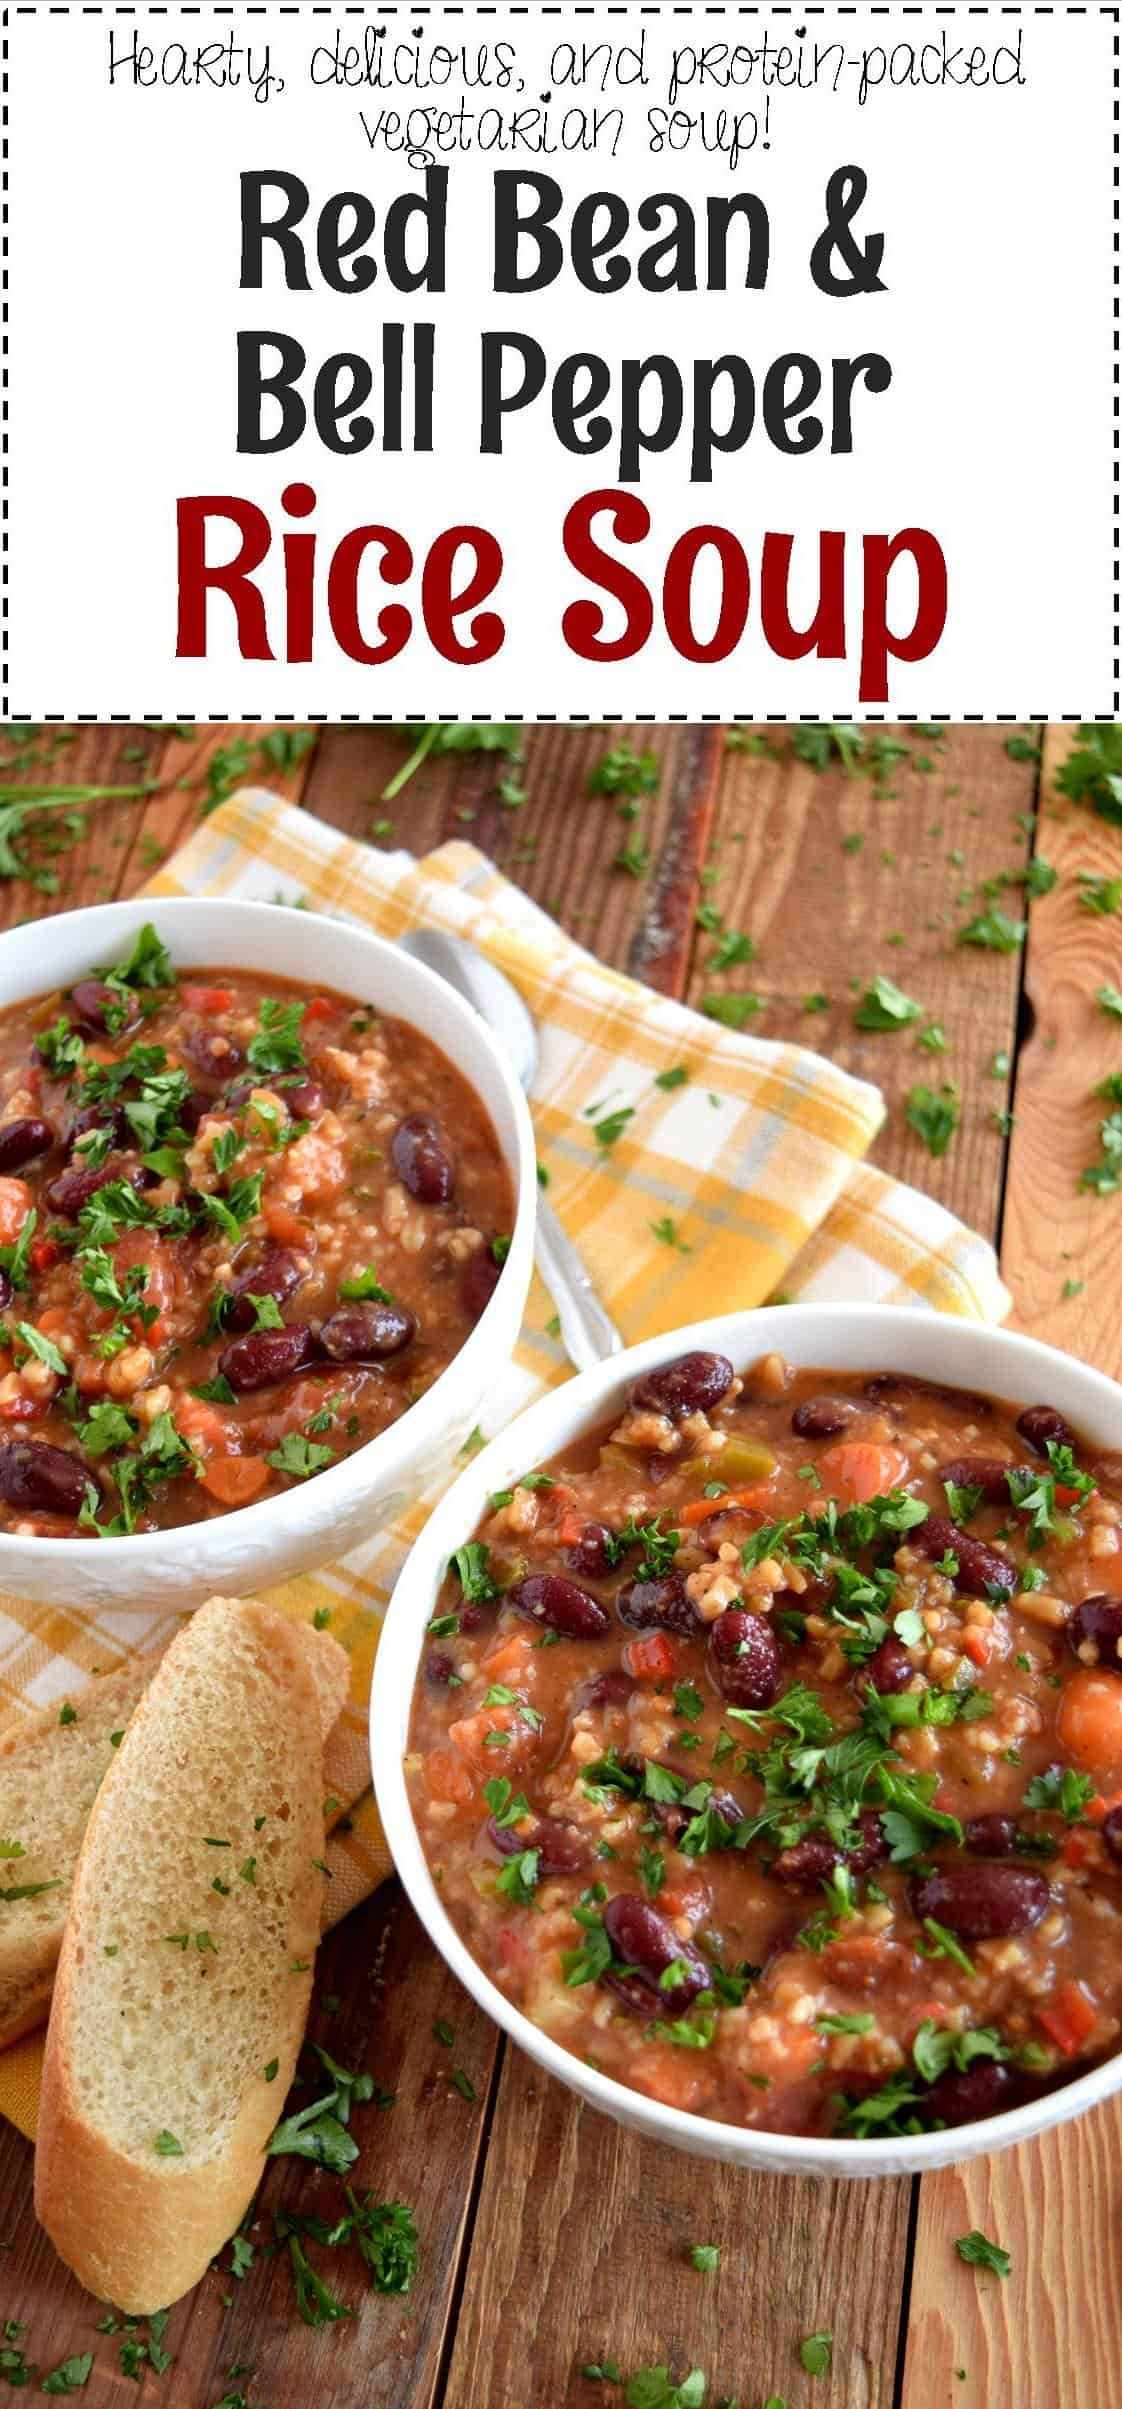 Red Bean and Bell Pepper Rice Soup - Lord Byron's Kitchen